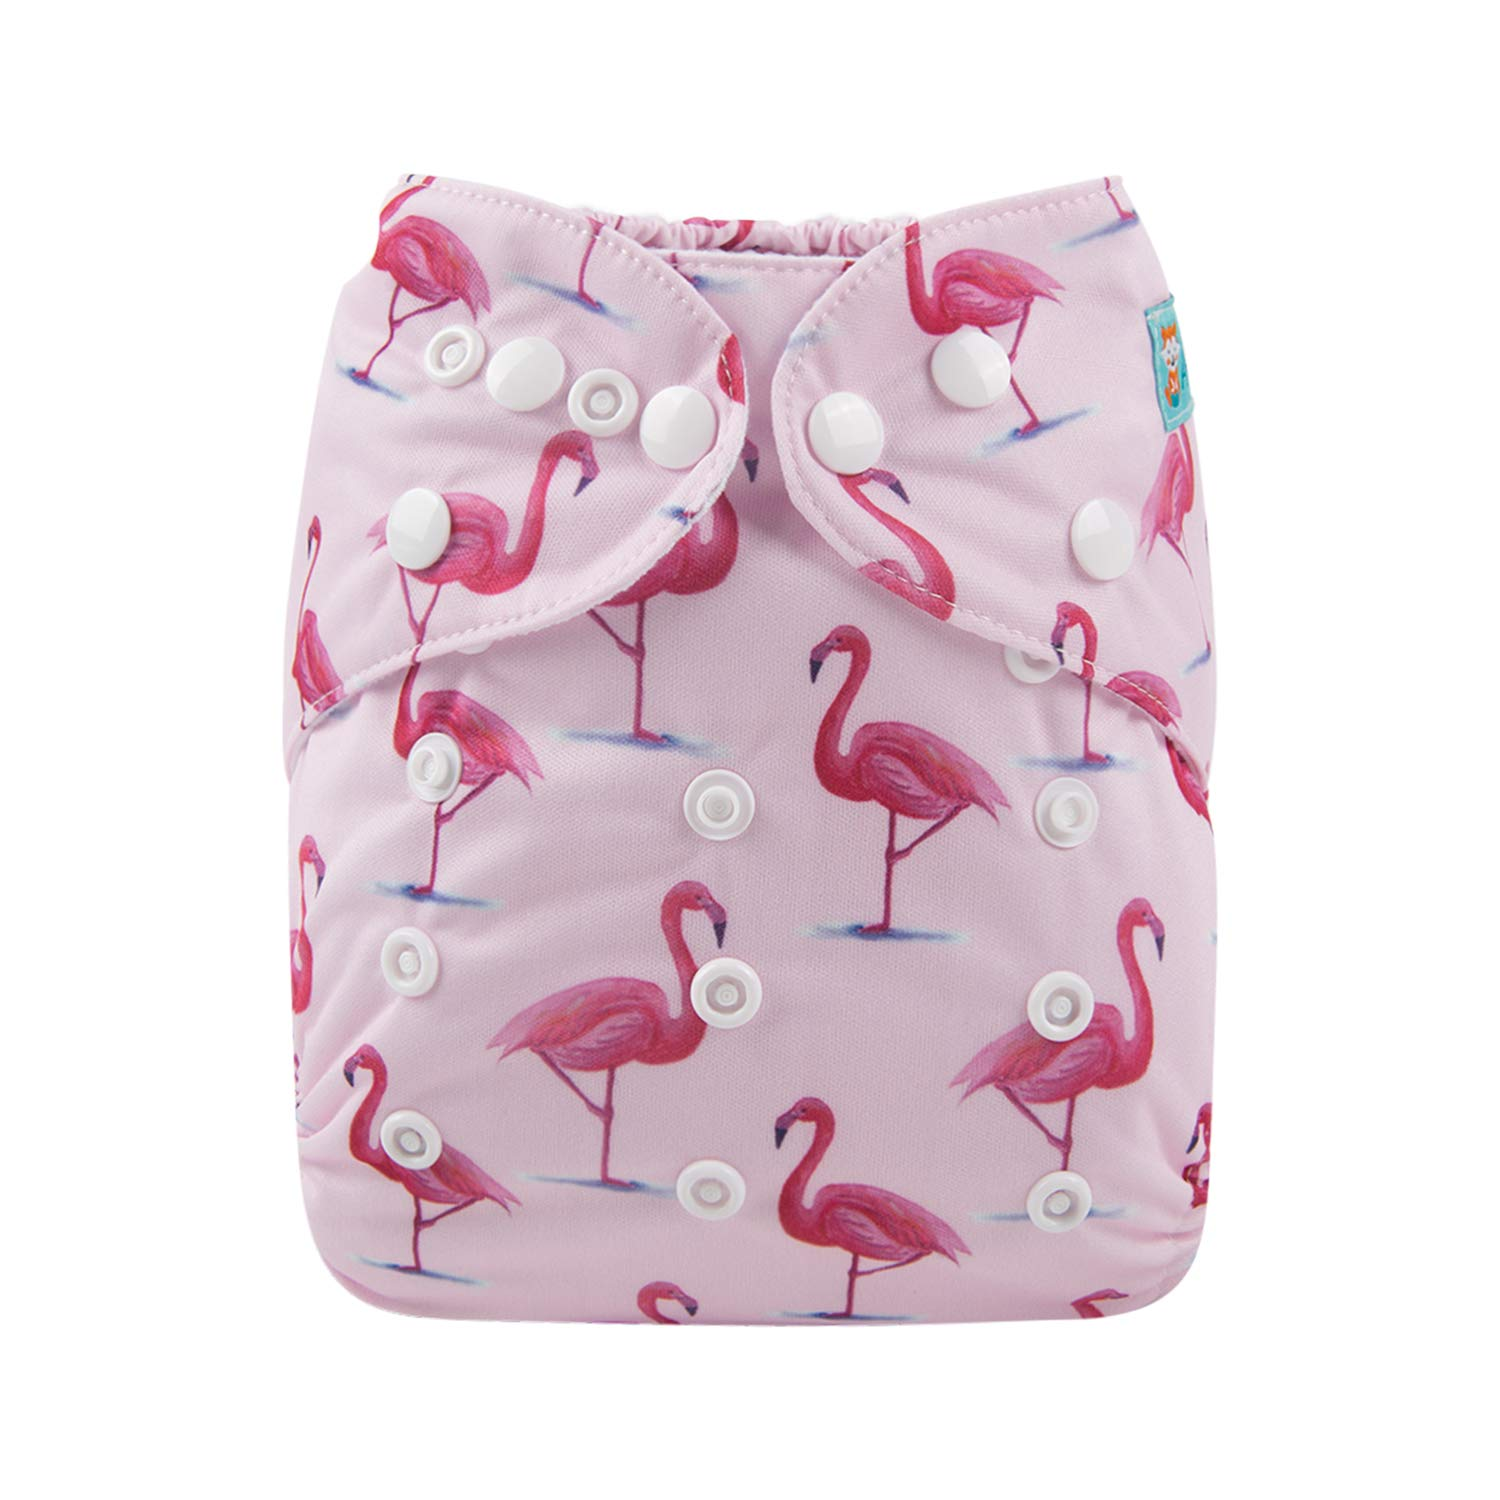 Alva Baby Diapers Reuseable Washable Pocket Cloth Diaper Nappy + 2 Inserts (YX13) Alvababy